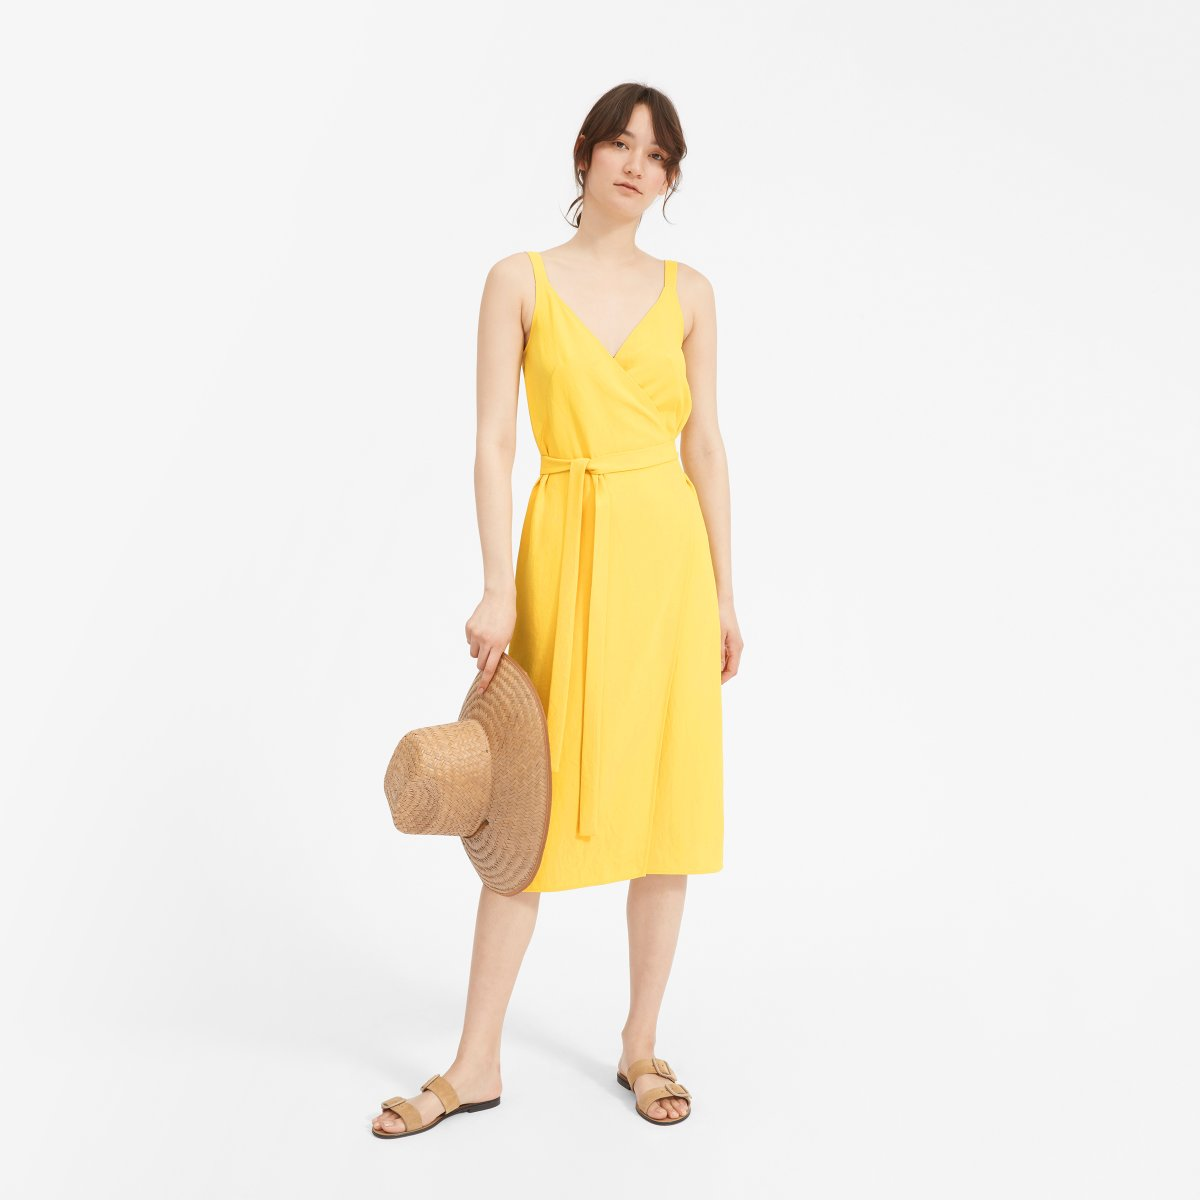 Everlane Choose What You Pay / Yellow Wrap Dress - Sunshine Style, A Florida Based Fashion Blog